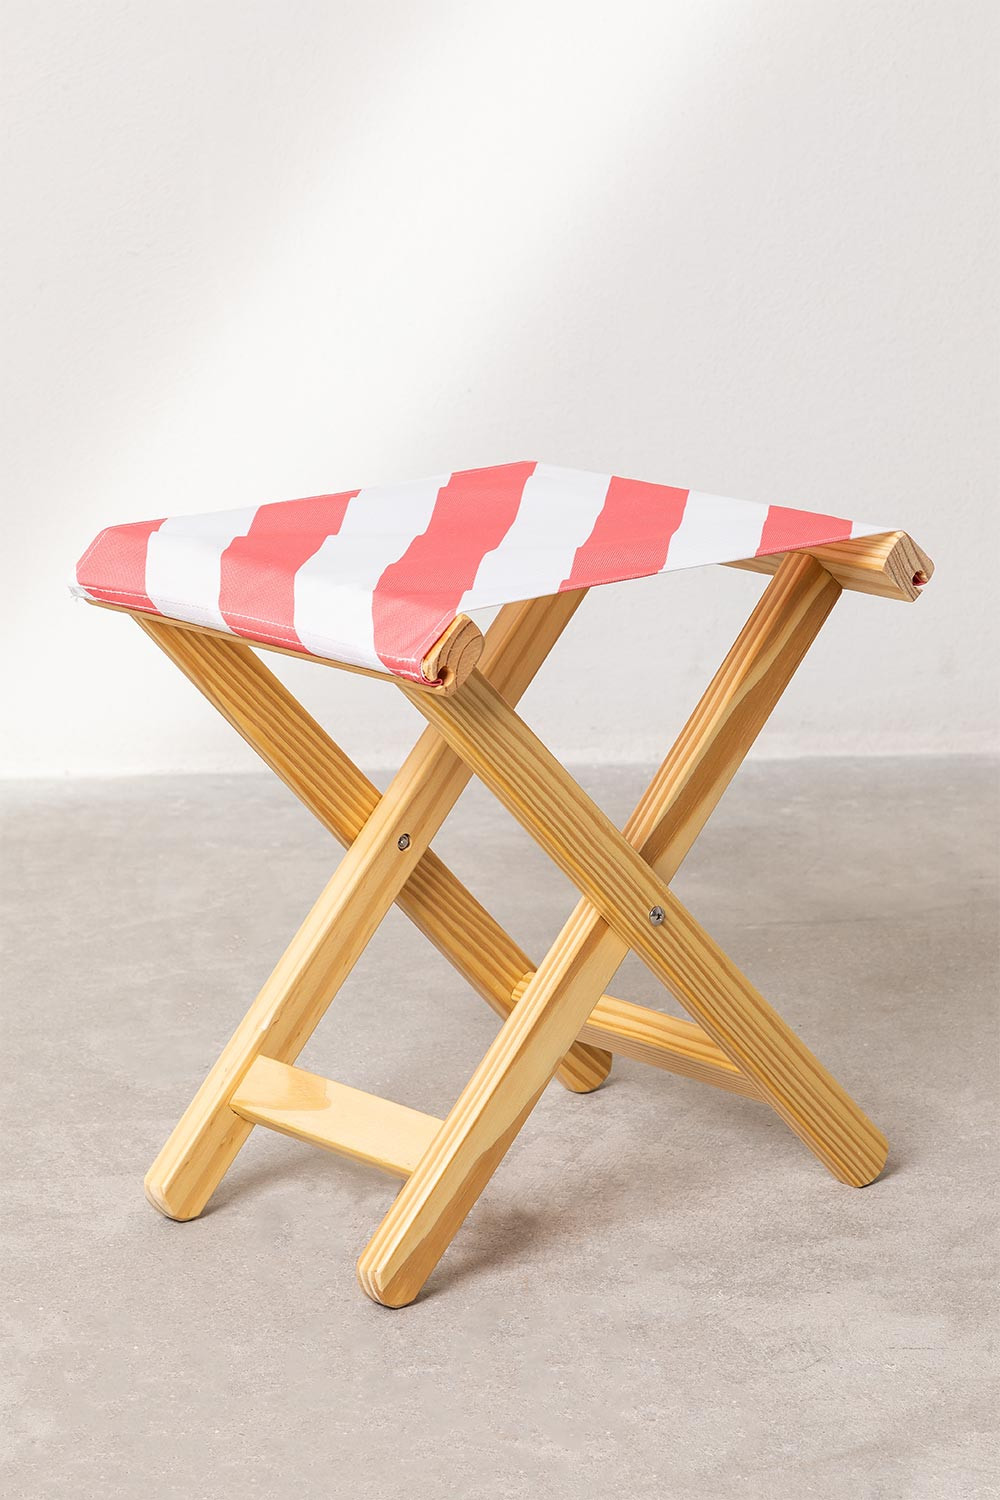 Low Wooden Stool Lyon, gallery image 1